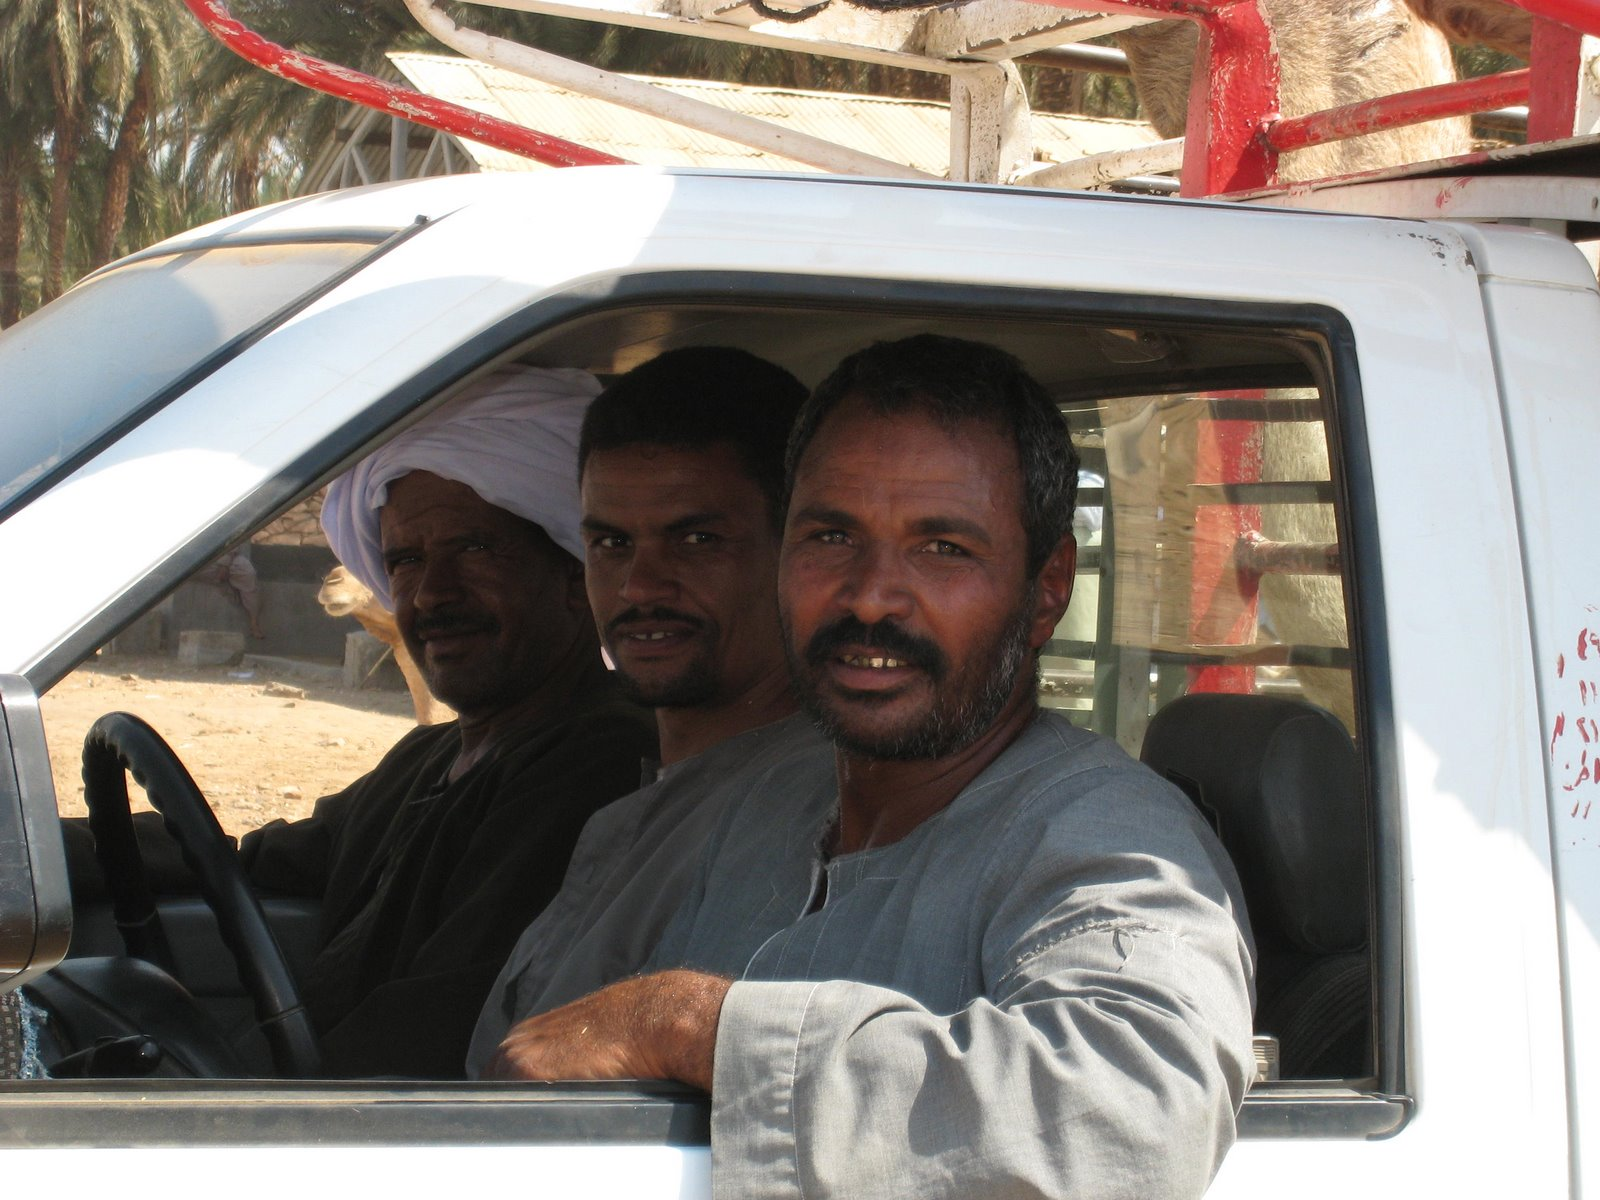 Description Egyptian men in car jpgEgyptian Guys